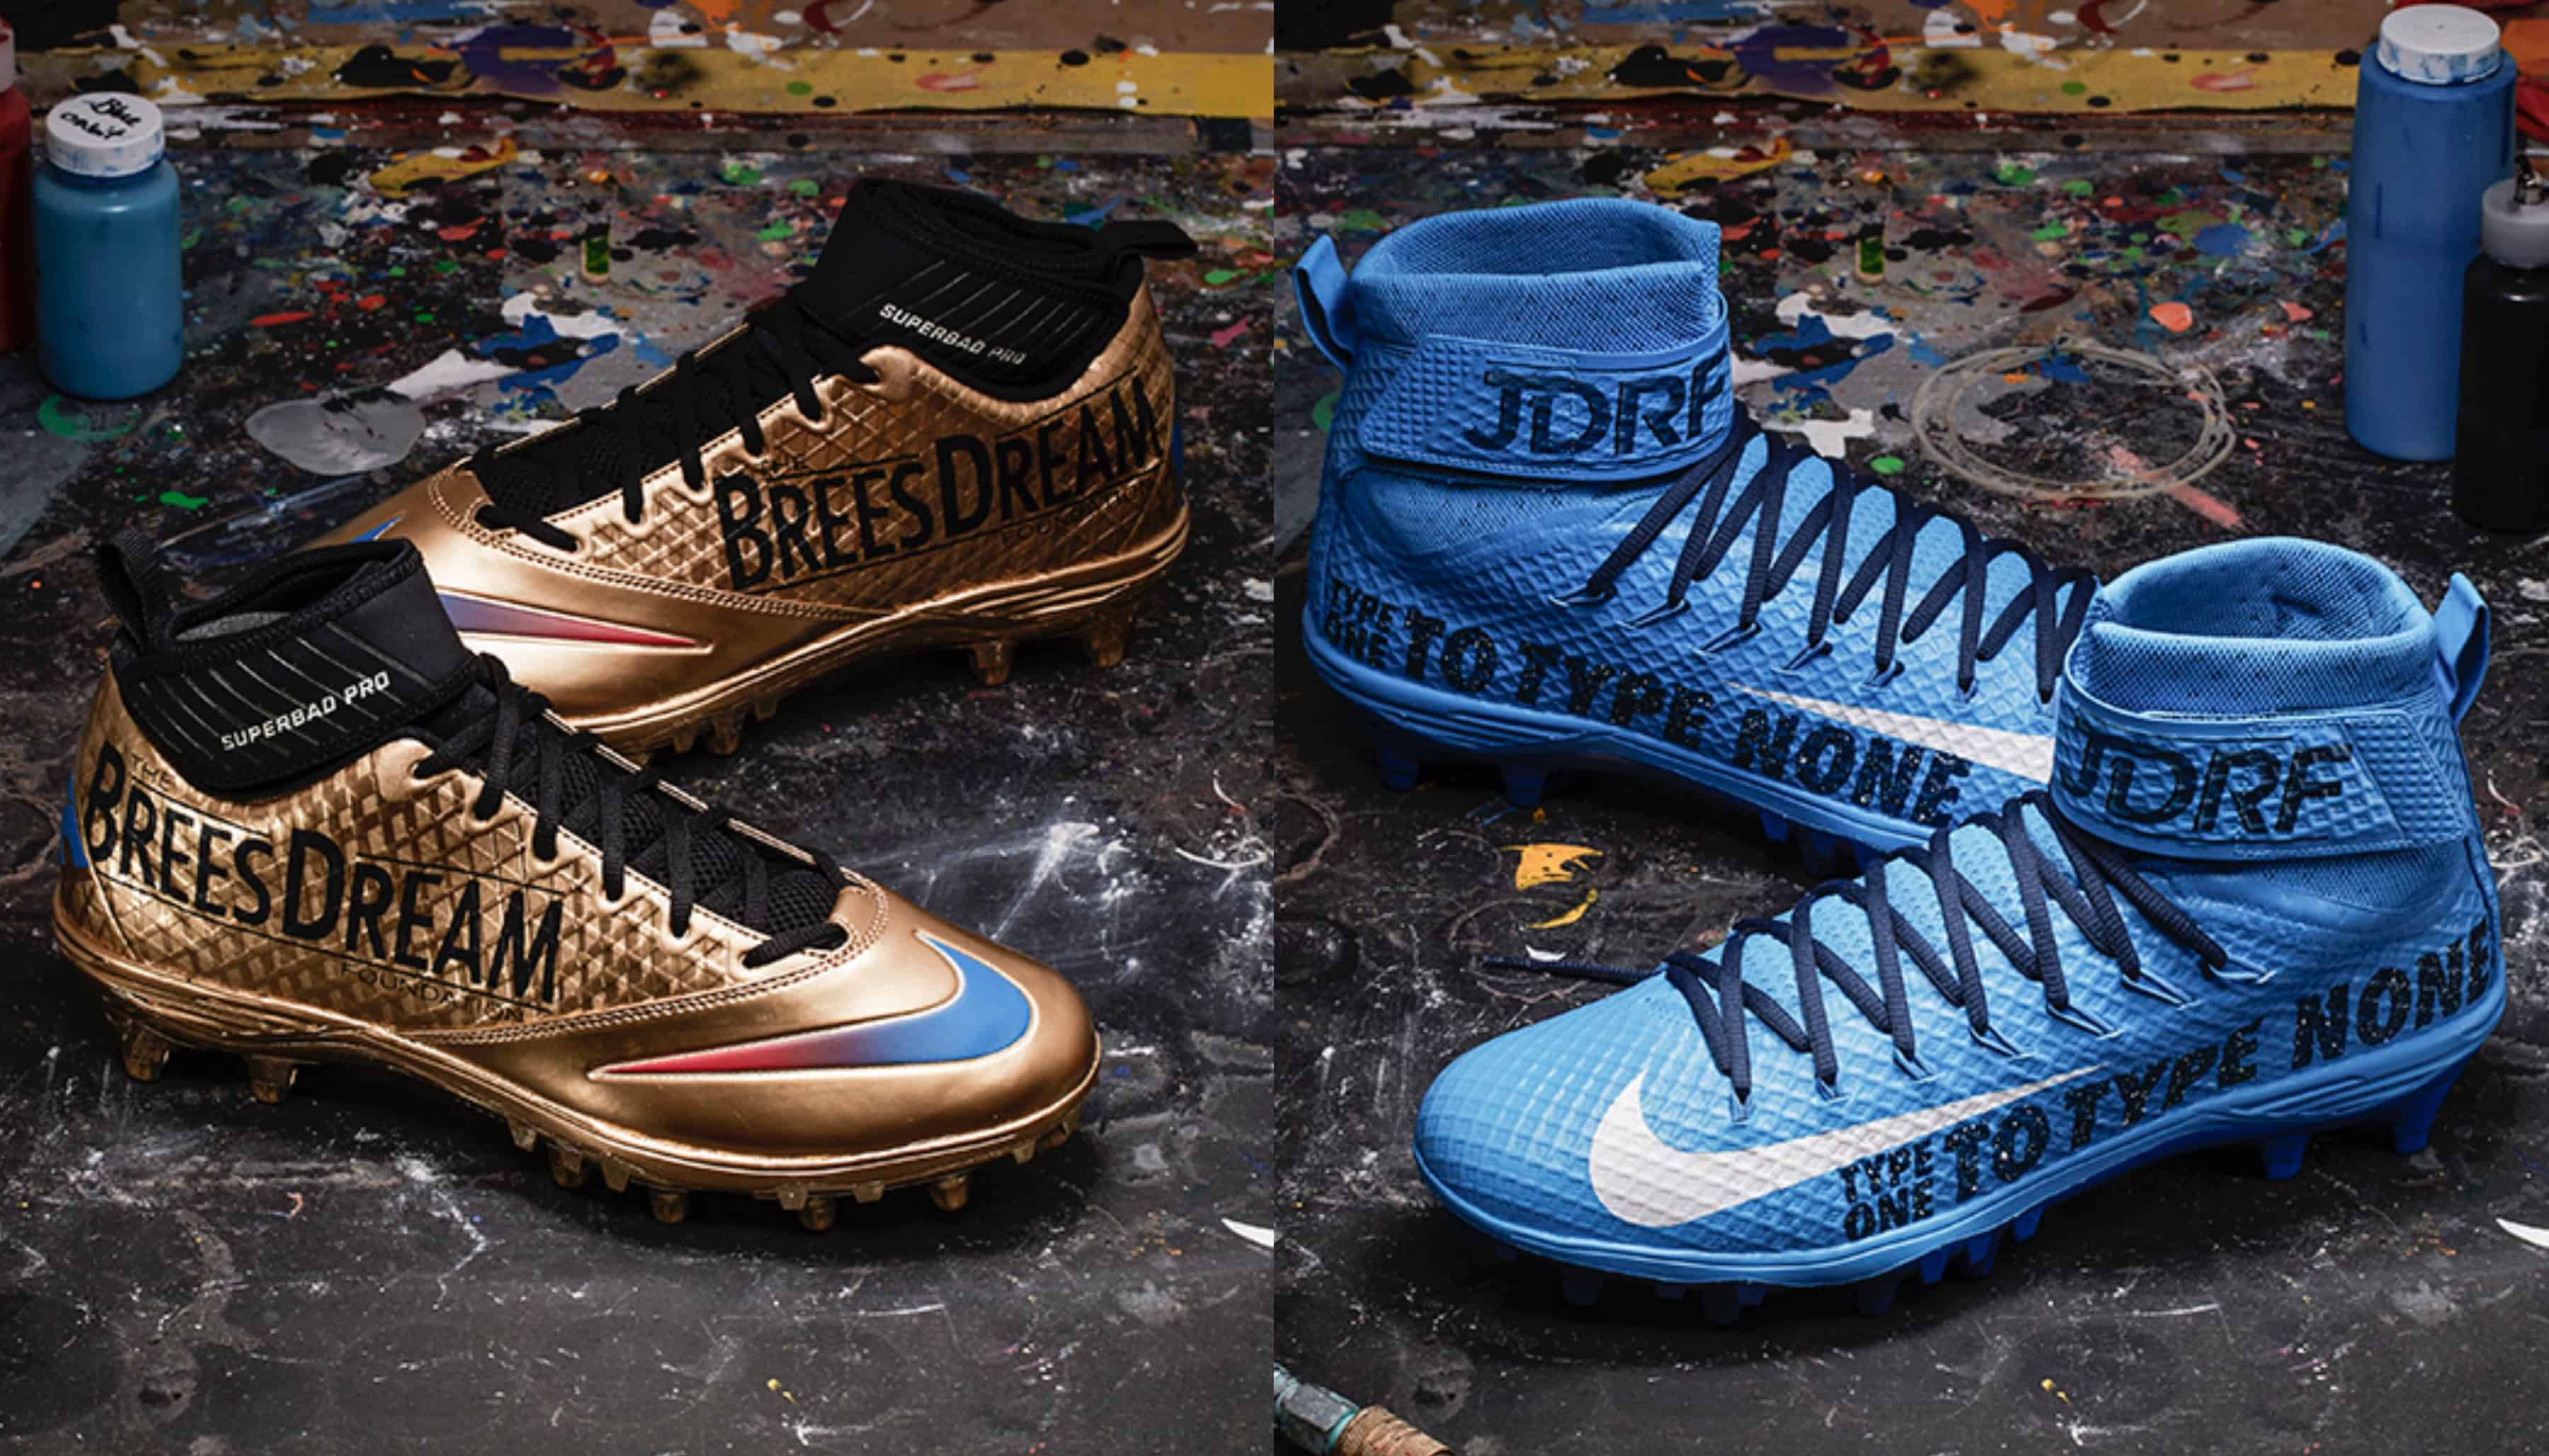 449d6263f 33 NFL Players Created Custom Nike Cleats That Support Their Favorite  Charities